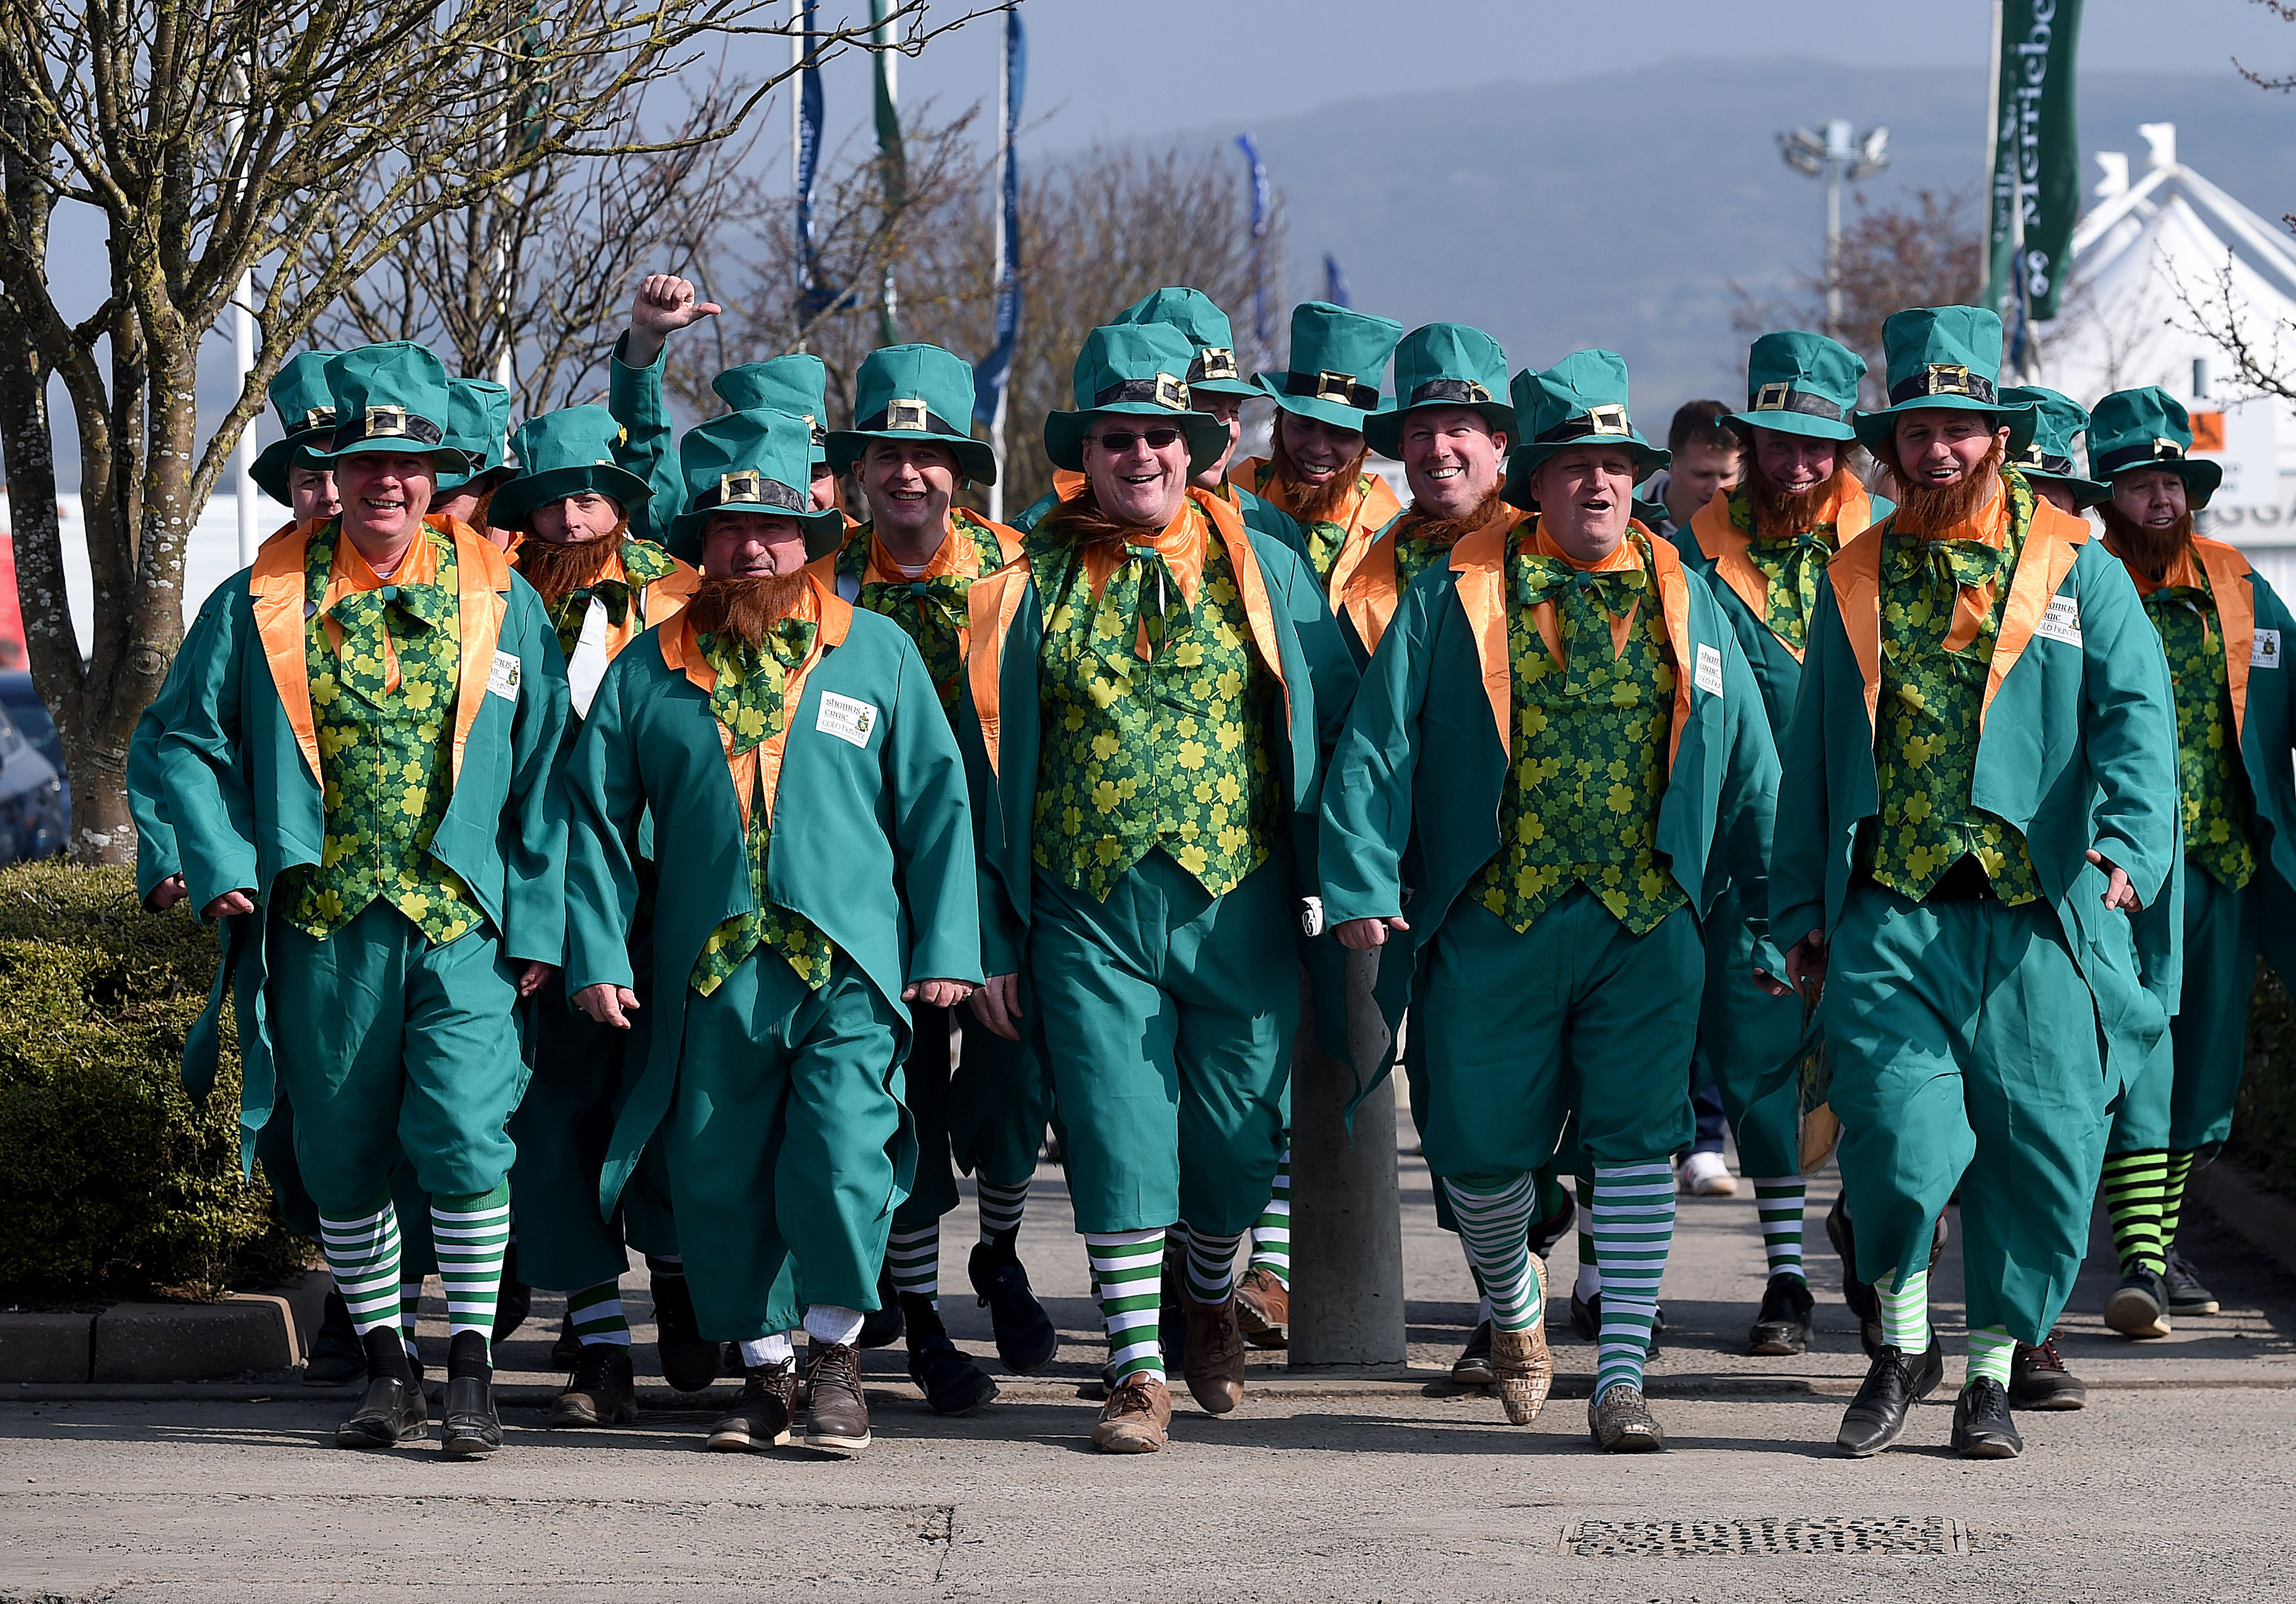 Racegoers dressed in fancy dress arrive  at Cheltenham Racecourse in Cheltenham England on St Patrick's Thursday March 17, 2016.  Cheltenham always attracts a large number Irish people to the Cheltenham Horse Racing Festival.(Joe Giddens/PA via AP) UNITED